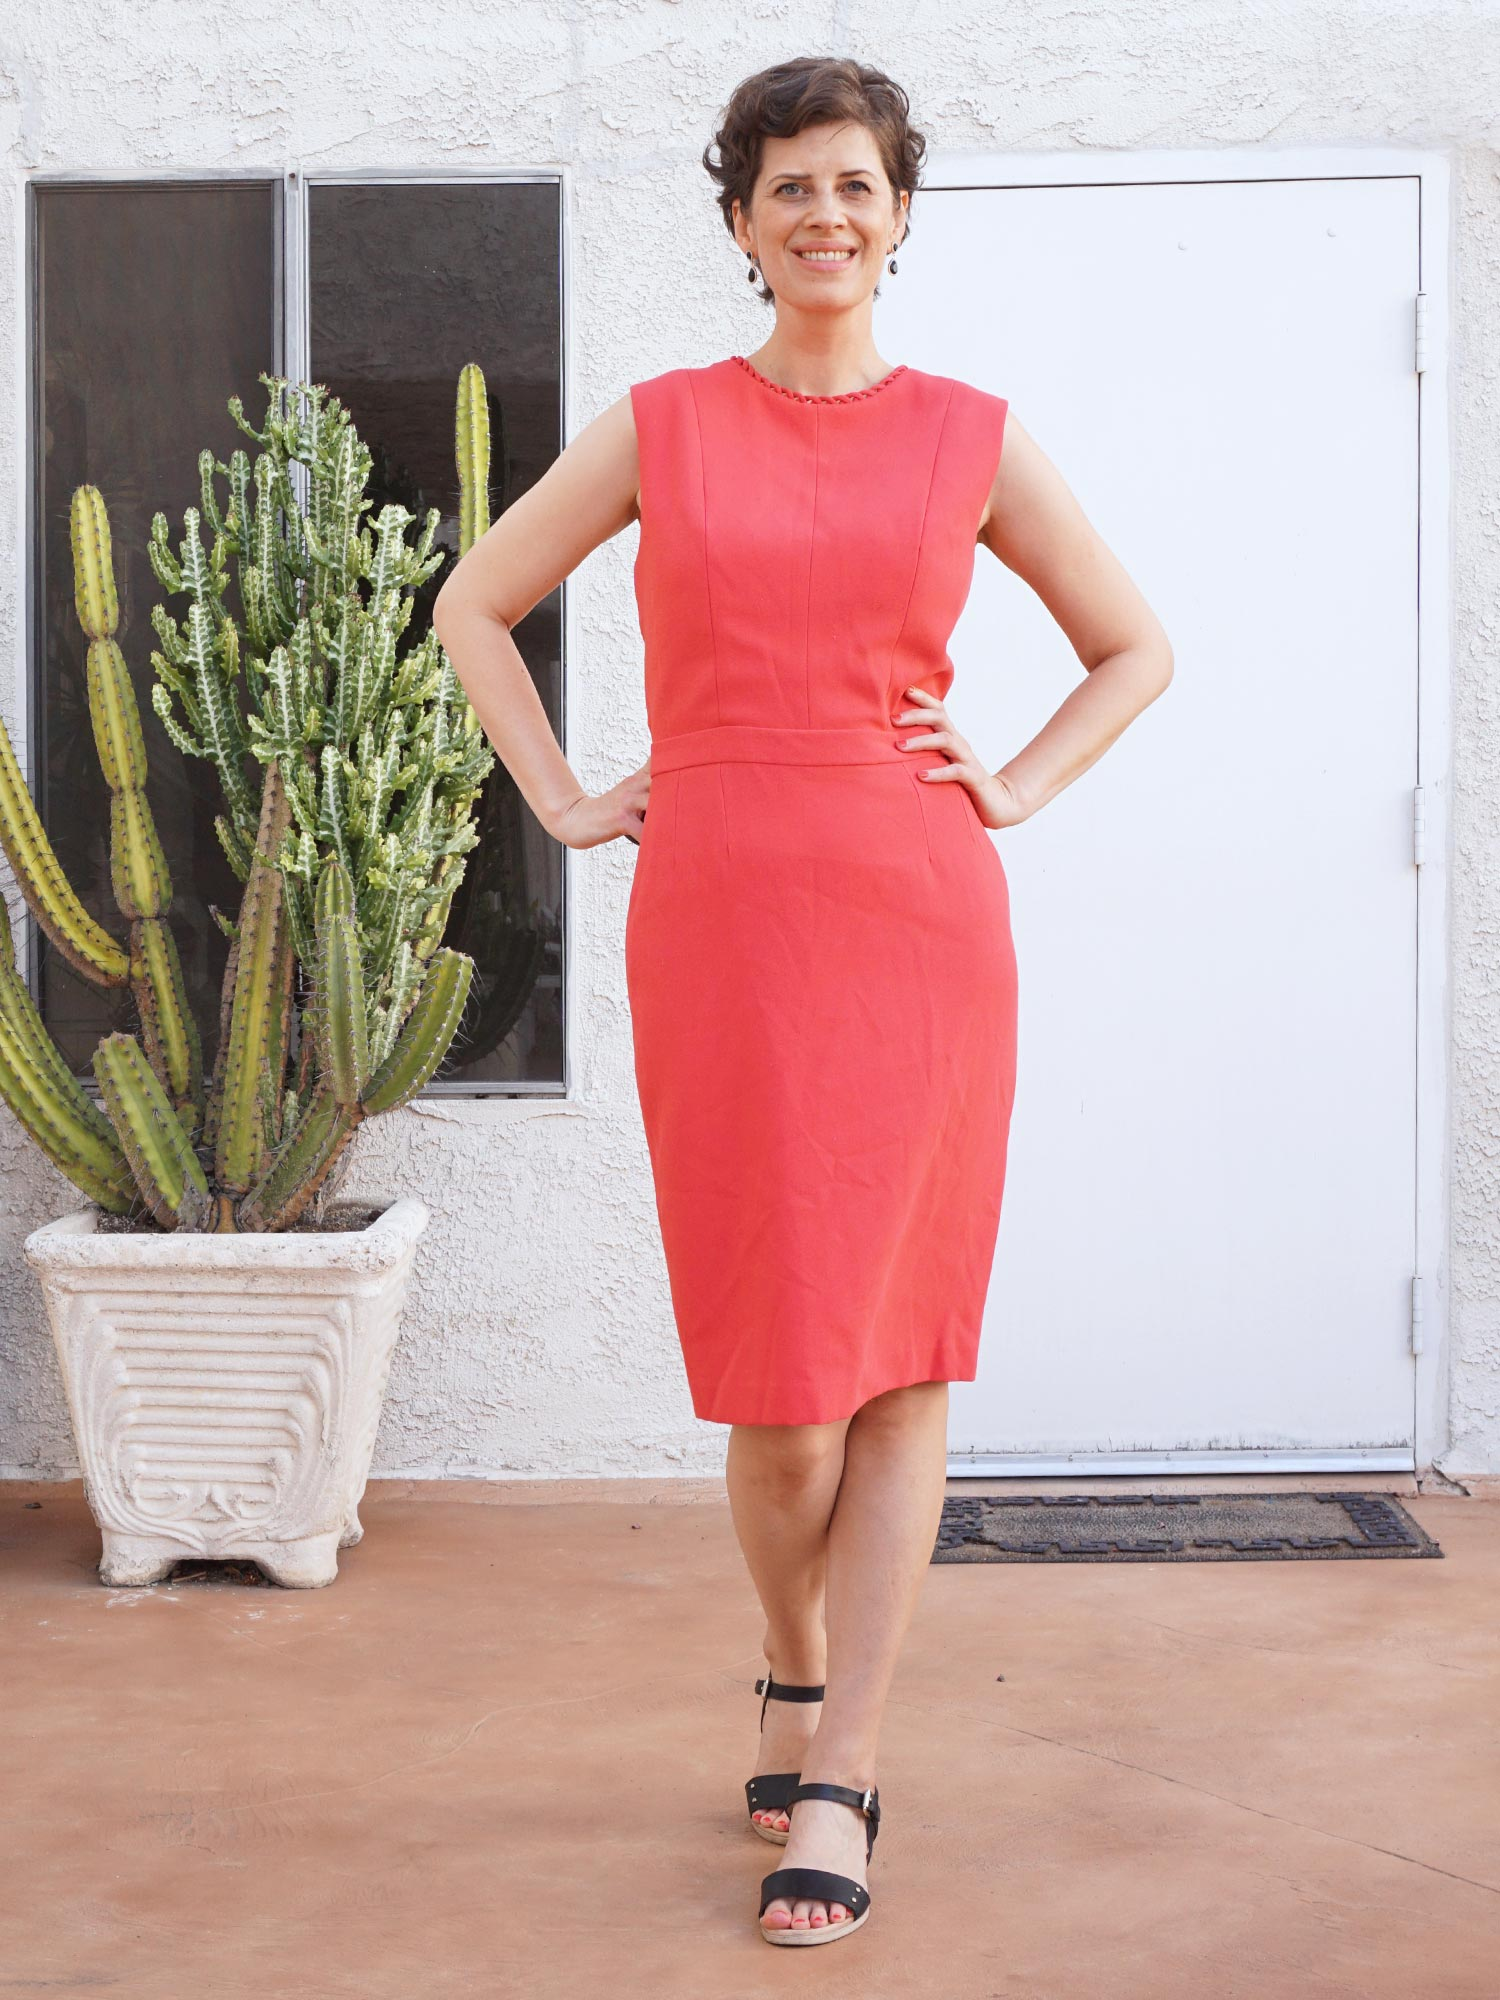 17SEWDIY-RefashionersOutfit-front3.jpg